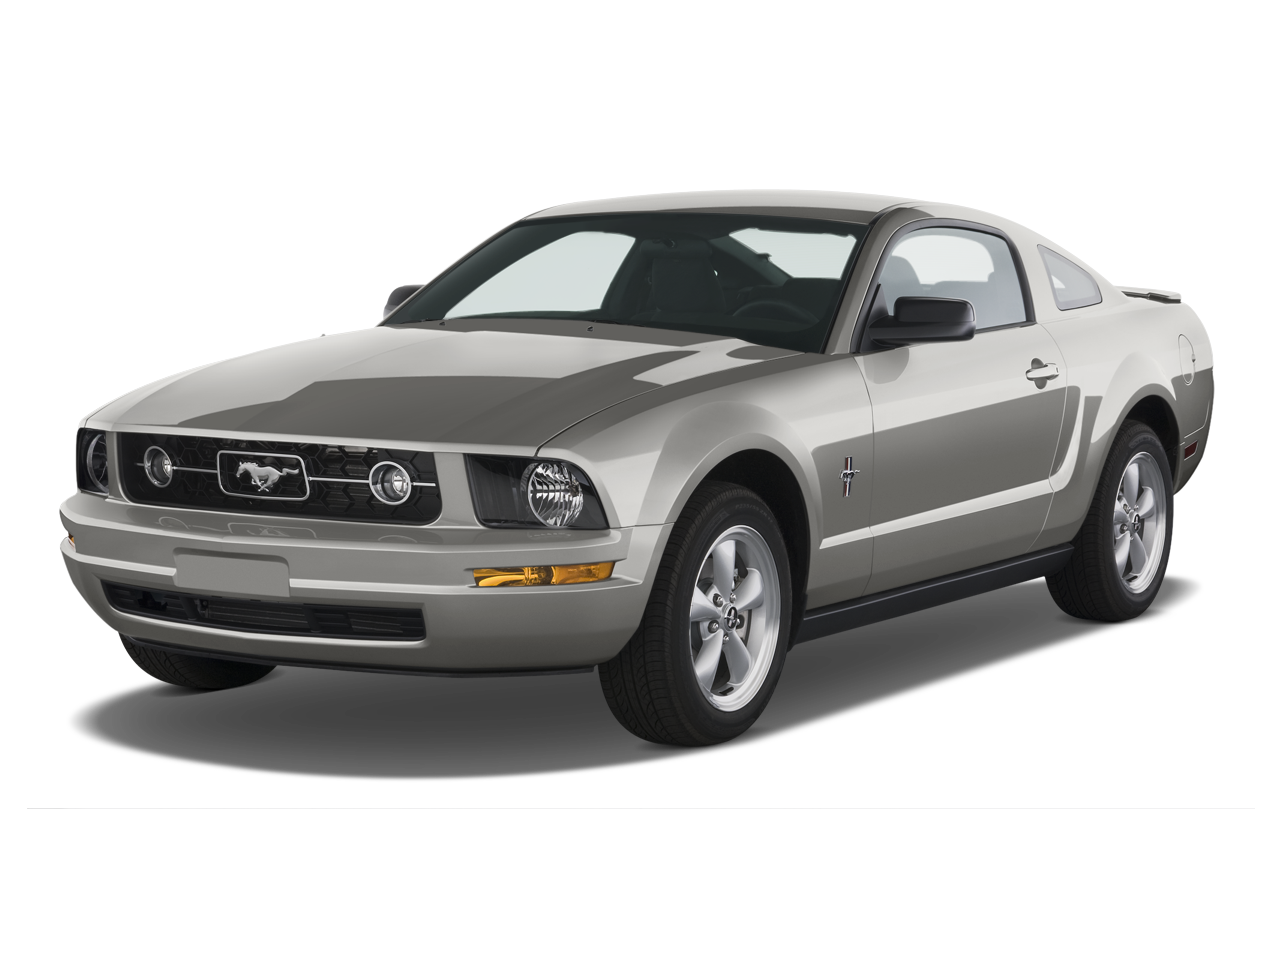 2009 5 ford mustang iacocca silver 45th anniversary edition revealed. Black Bedroom Furniture Sets. Home Design Ideas